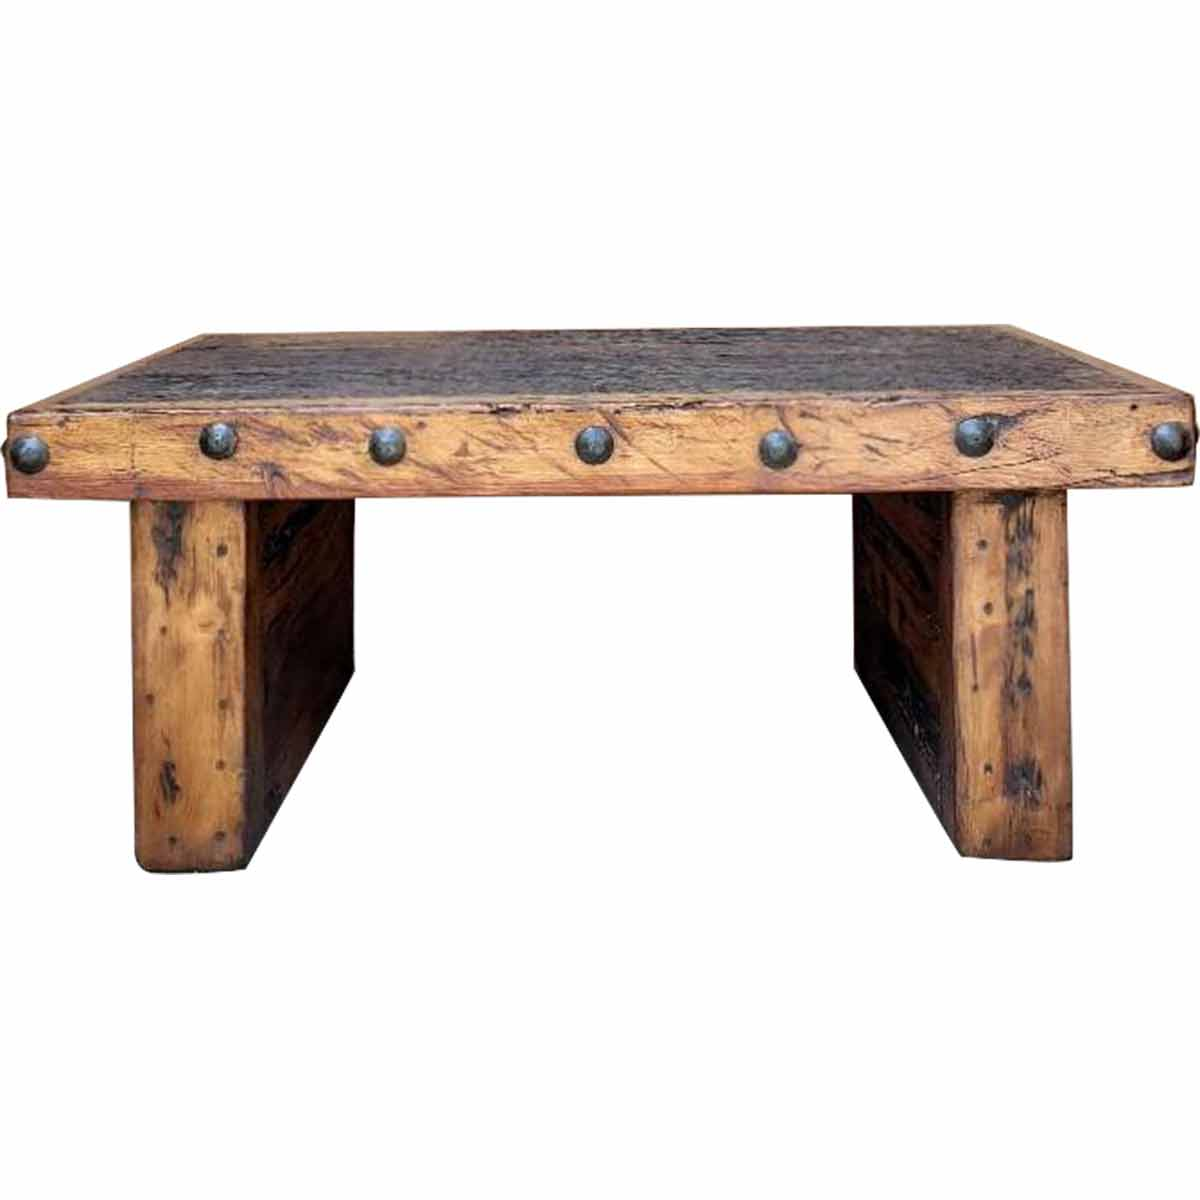 Recycled Wood Beam Table